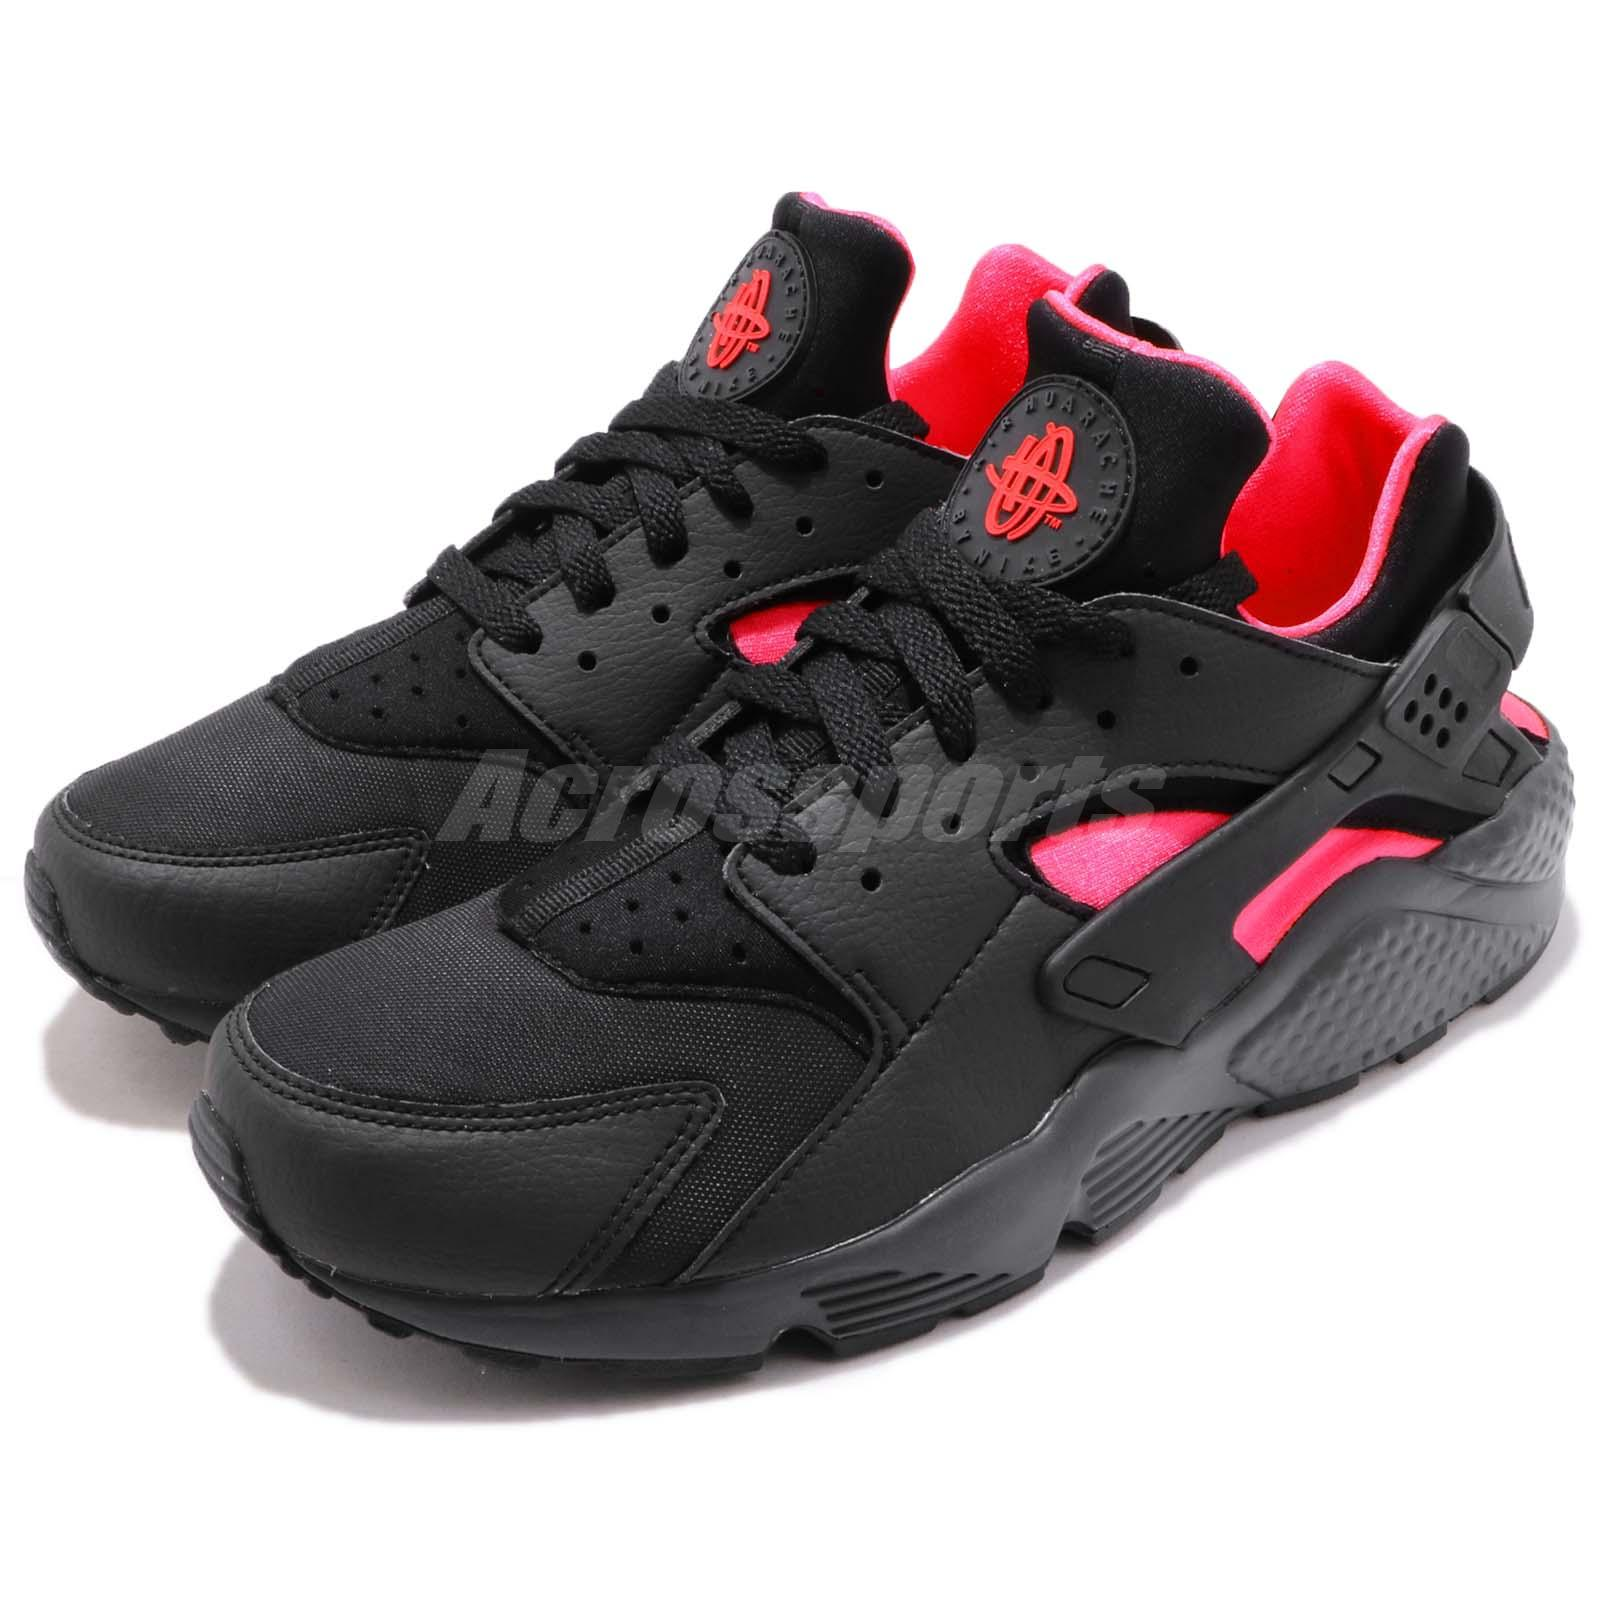 separation shoes 7b207 c6f92 Details about Nike Air Huarache Black Solar Red Men Running Casual Shoes  Sneakers 318429-055